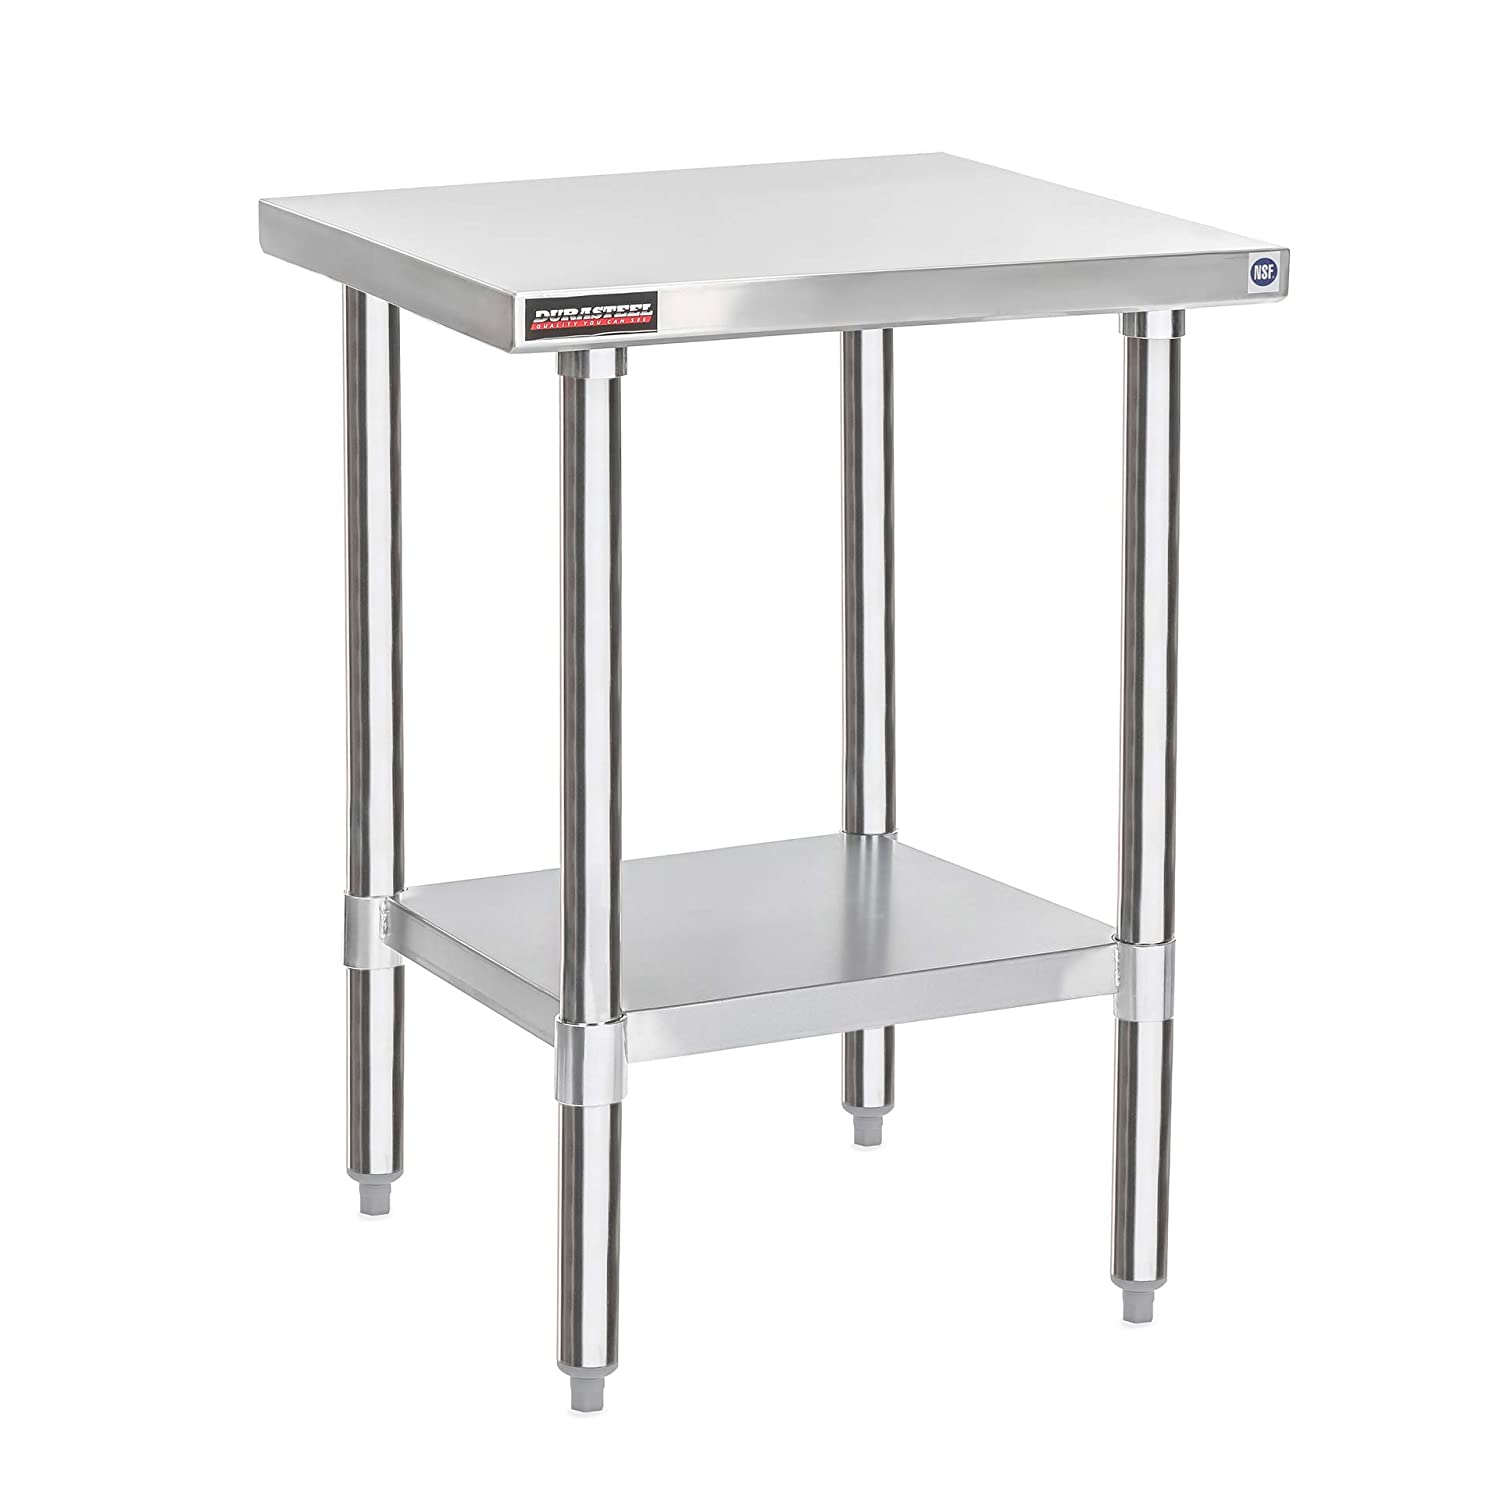 "DuraSteel Stainless Steel Work Table 24"" x 18"" x 34"" Height - Food Prep Commercial Grade Worktable - NSF Certified - Fits for use in Restaurant, Business, Warehouse, Home, Kitchen, Garage"